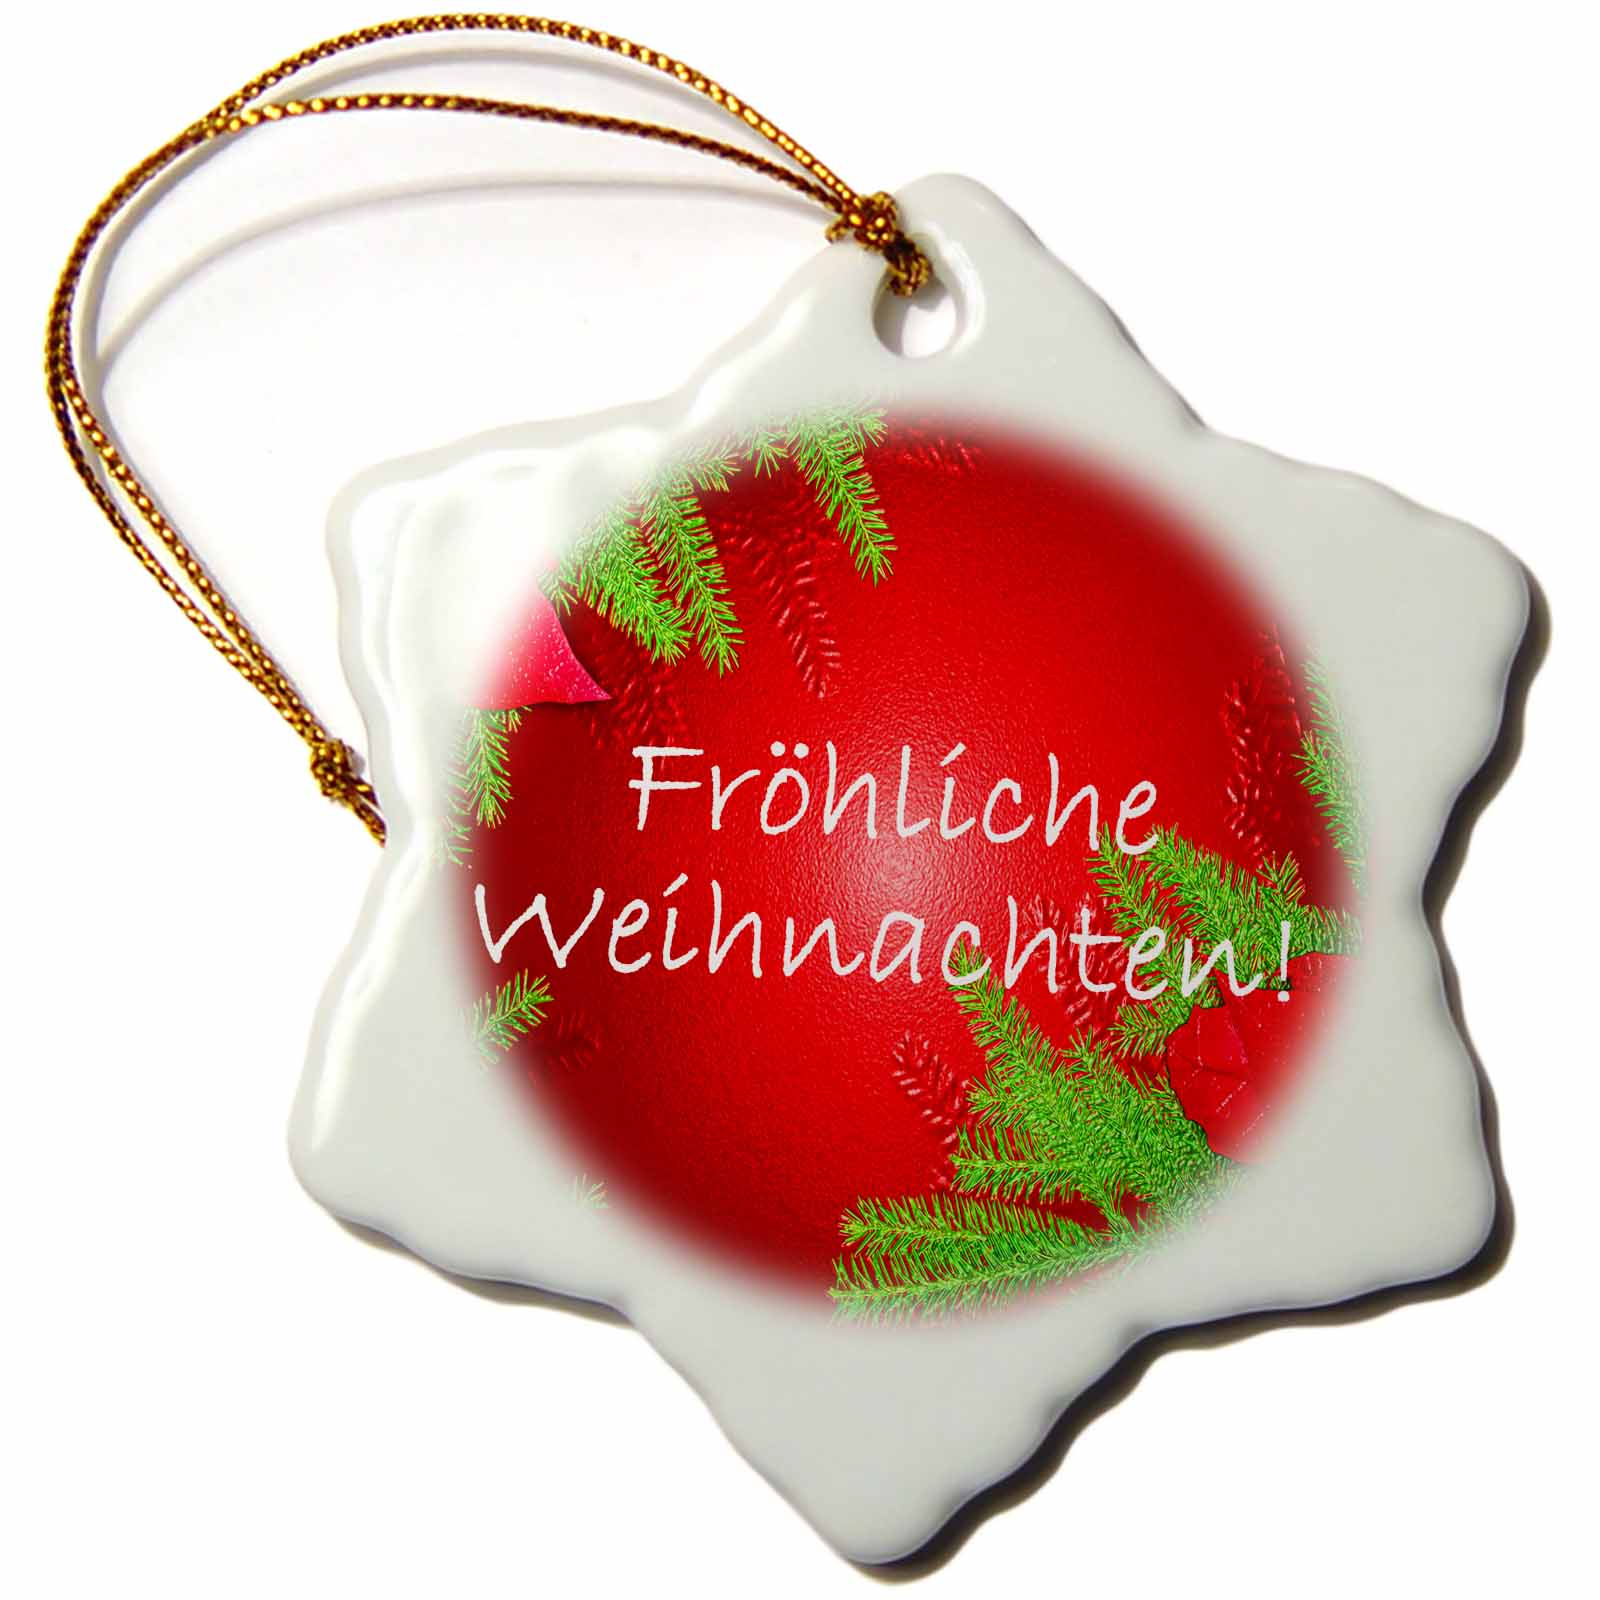 3dRose Christmas Poinsettia Frohliche Weihnachten in Red I, Snowflake Ornament, Porcelain, 3-inch